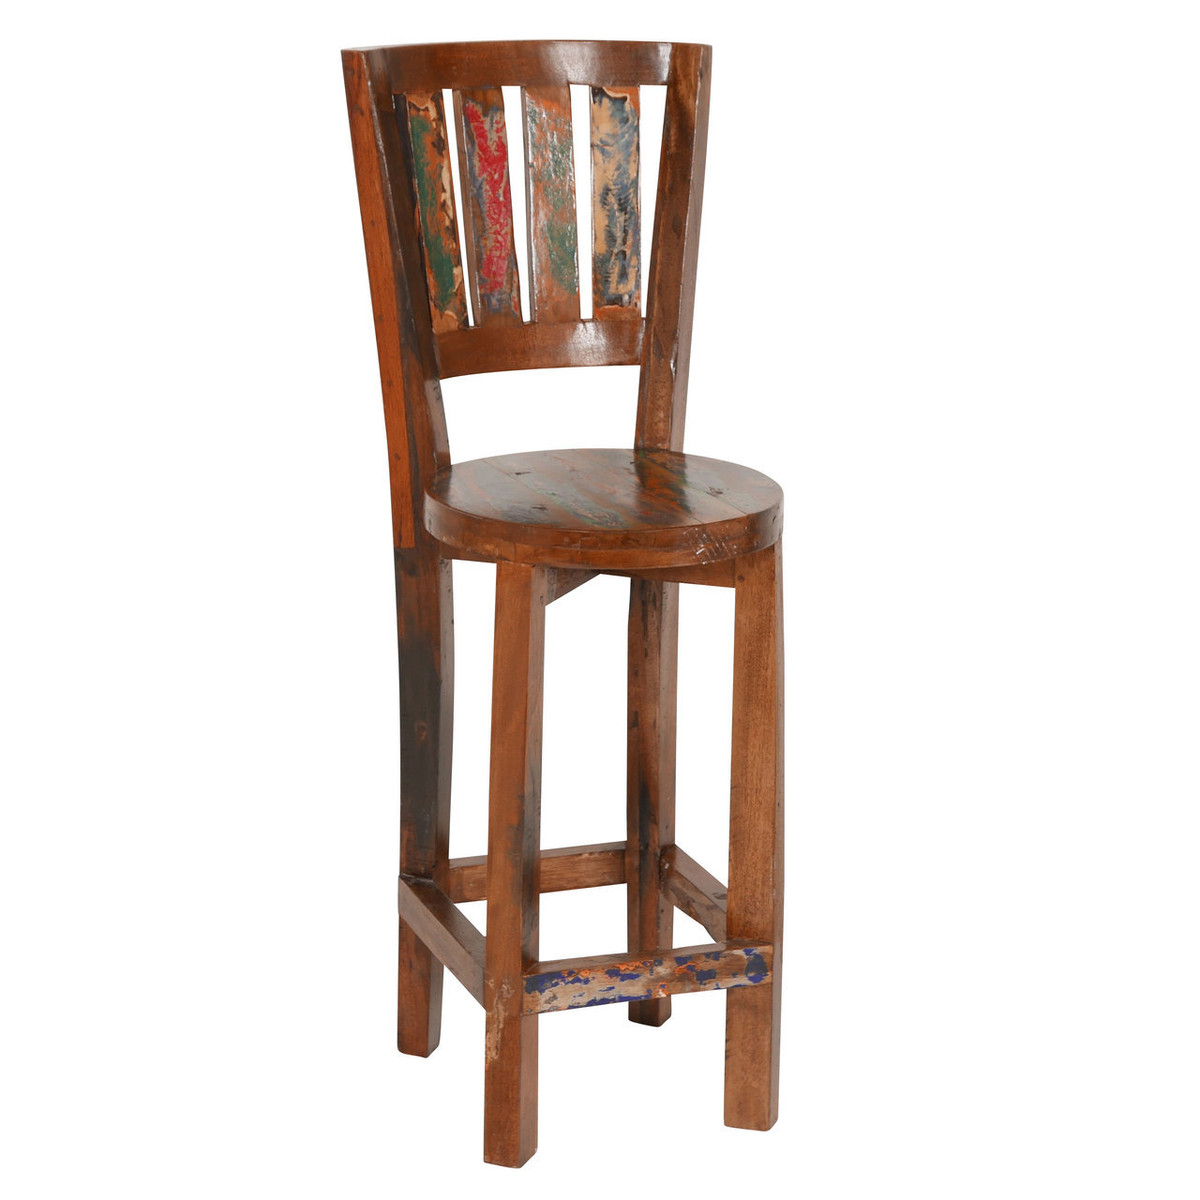 high in distressed cool and magnificent attachment chairs teal cottage lightly id seat rush counter inch stools back kitchen white top table backless of bar pair